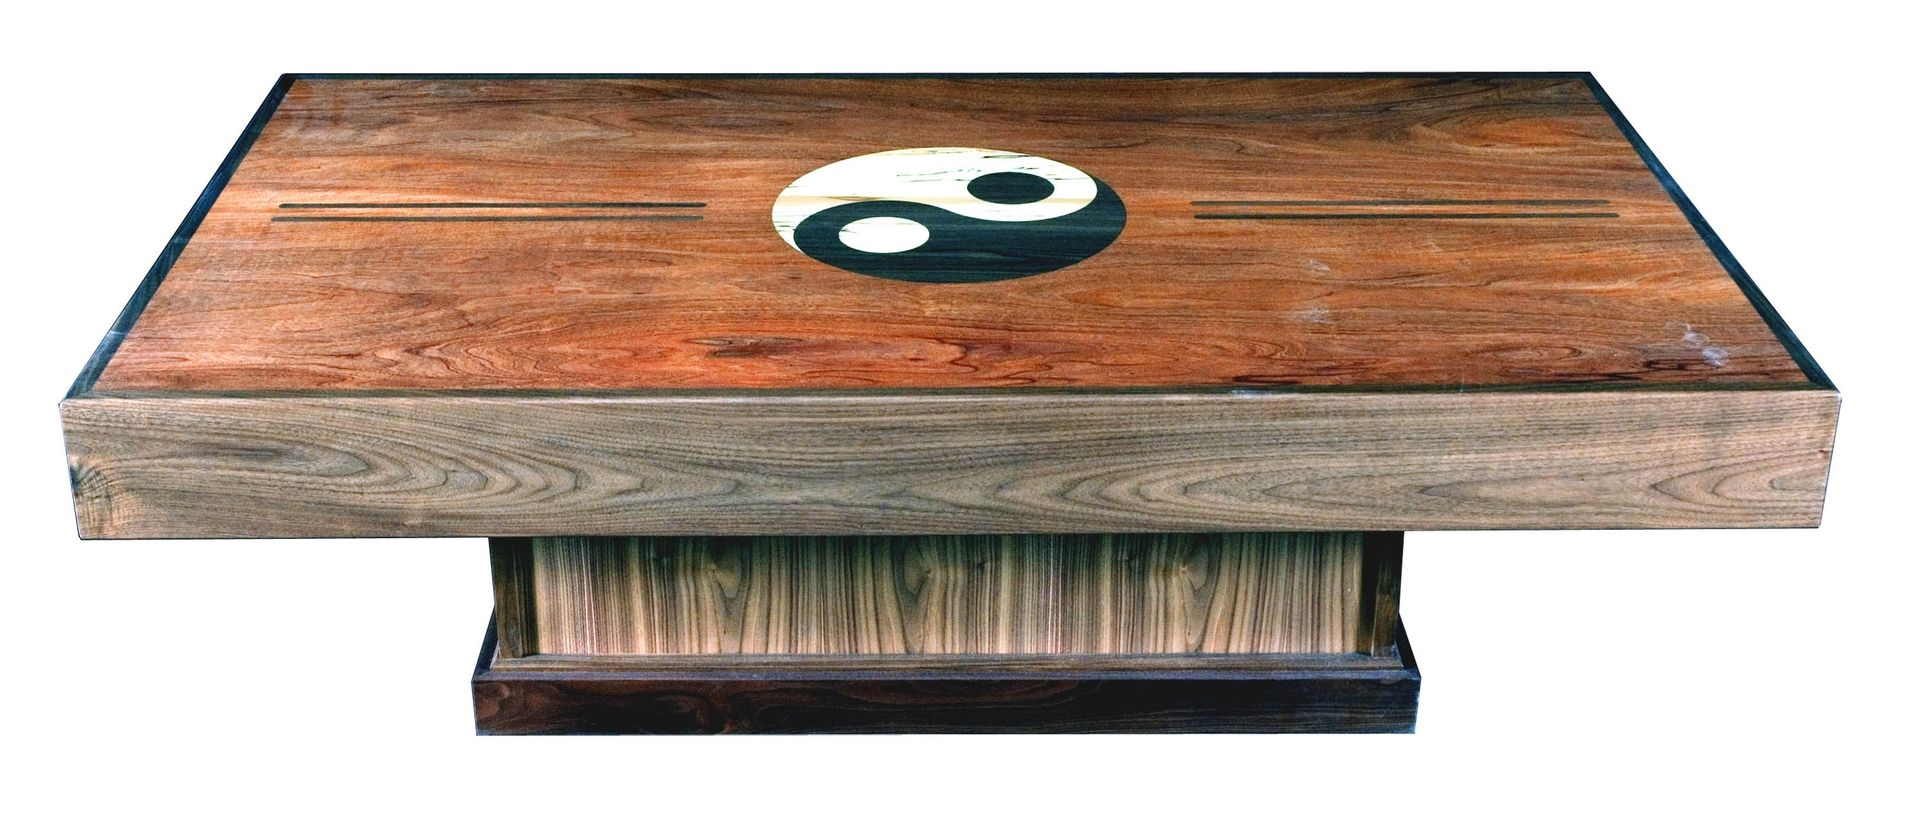 Handmade Yin Yang Tean Table By Myers Design Inc